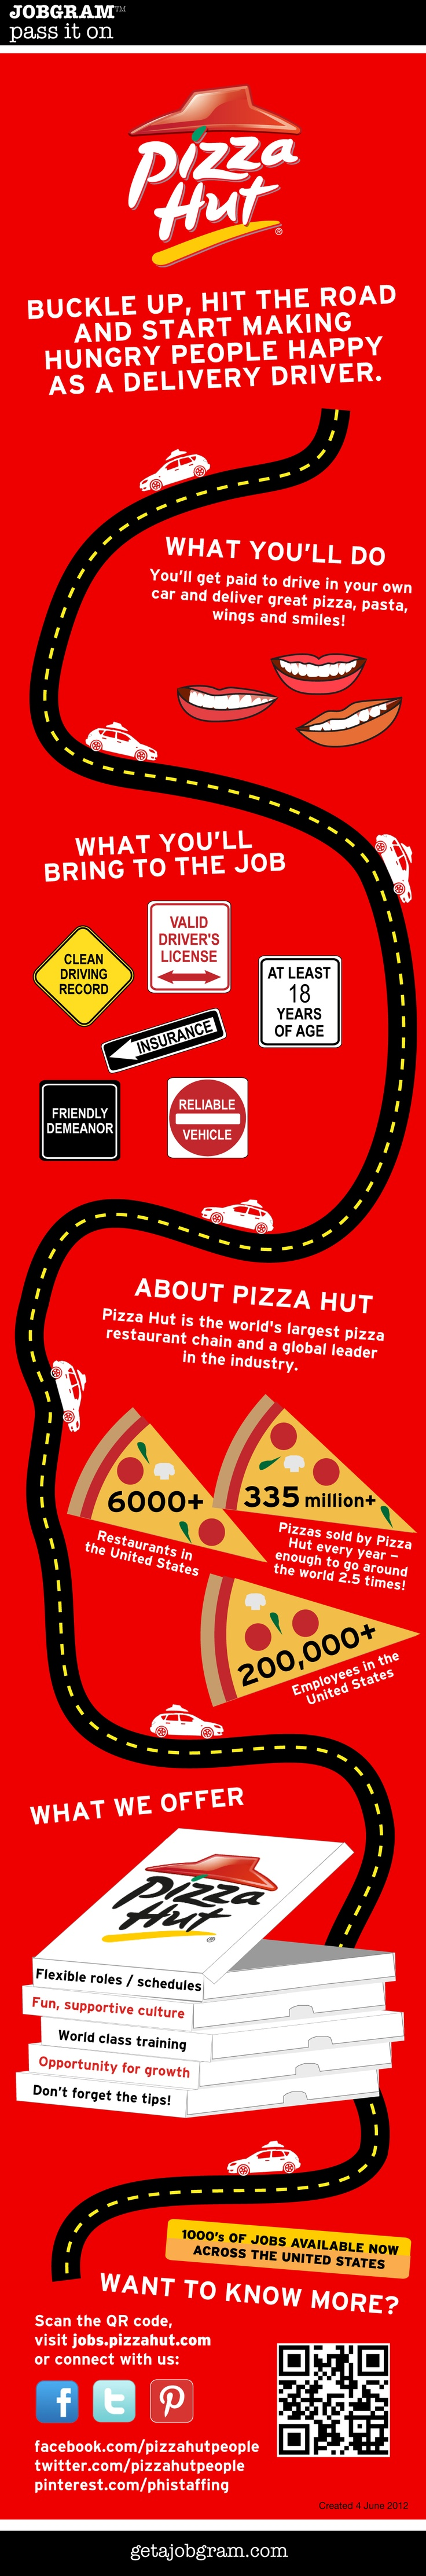 Pizza Delivery Resume 36 Best Recruiting Images On Pinterest  Blouses Content Marketing .